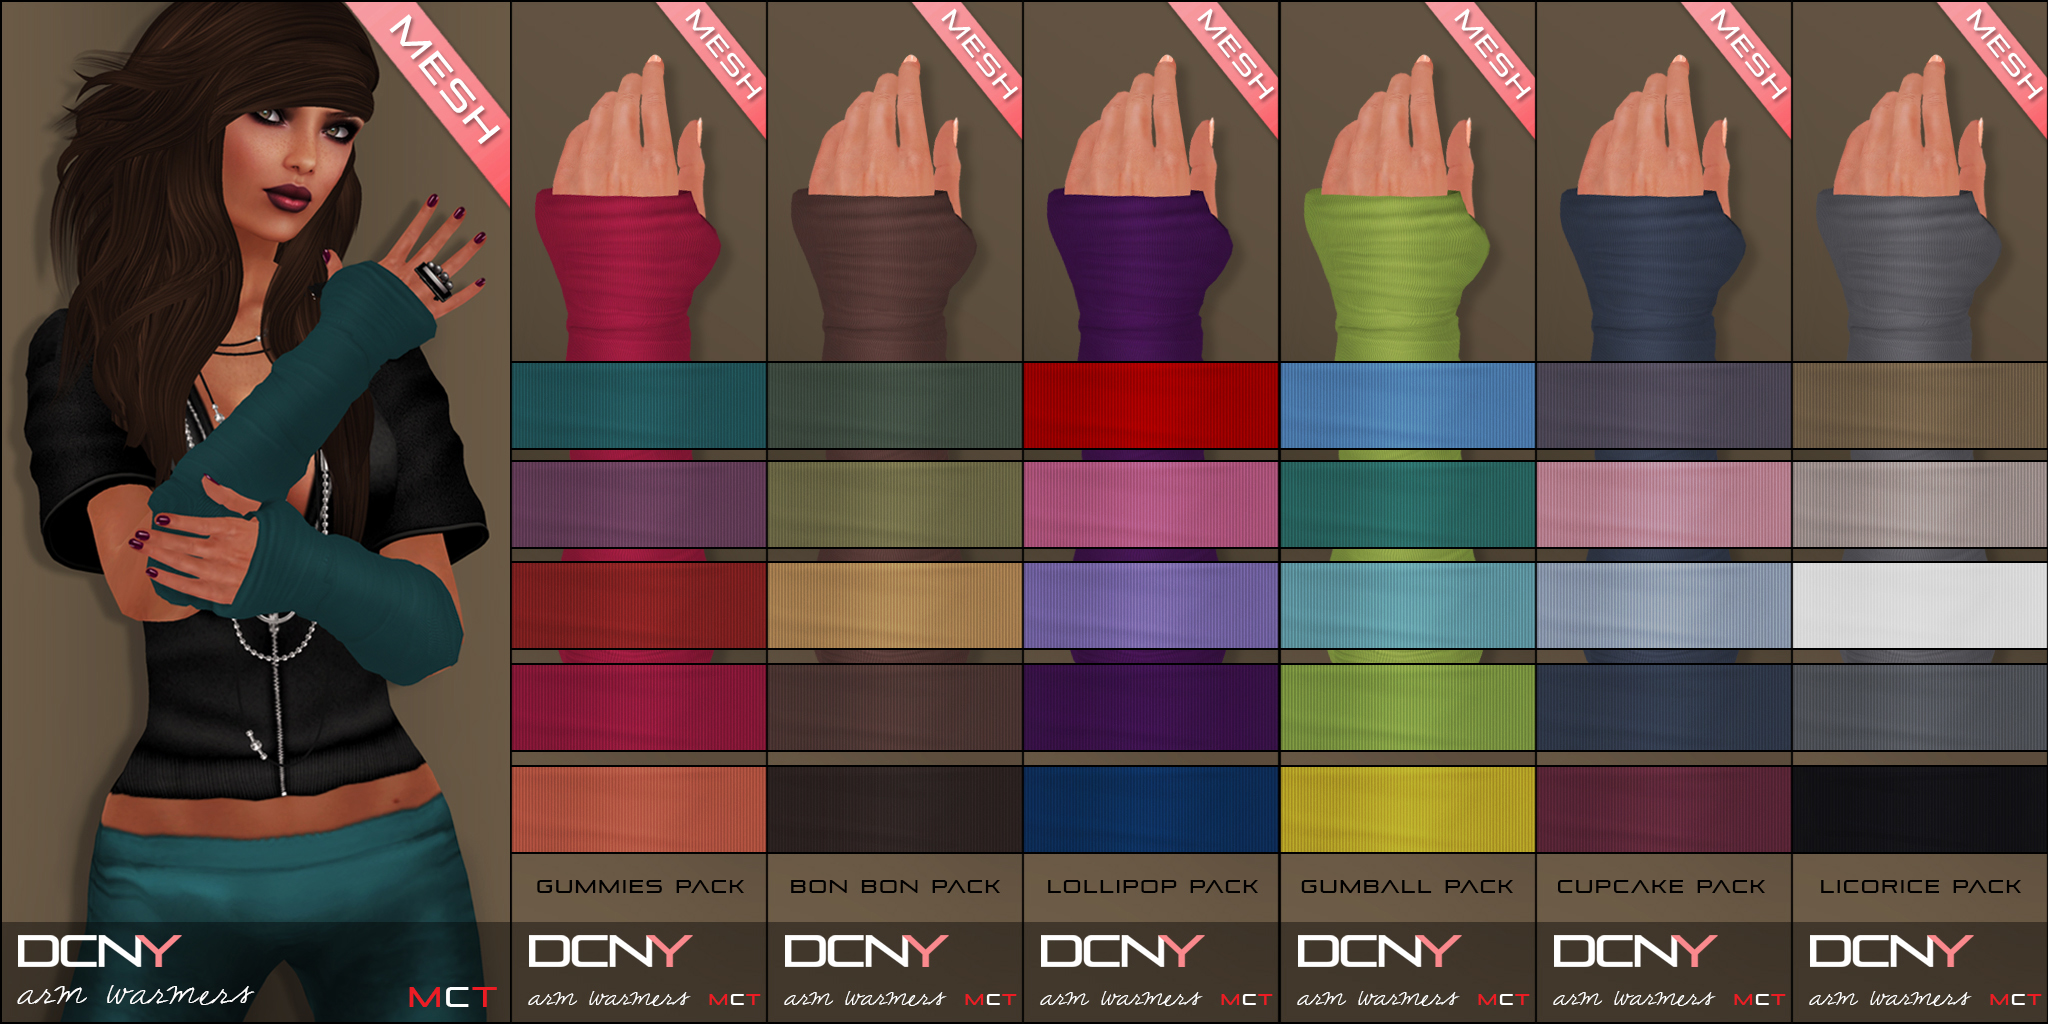 DCNY Arm Warmer Color Packs